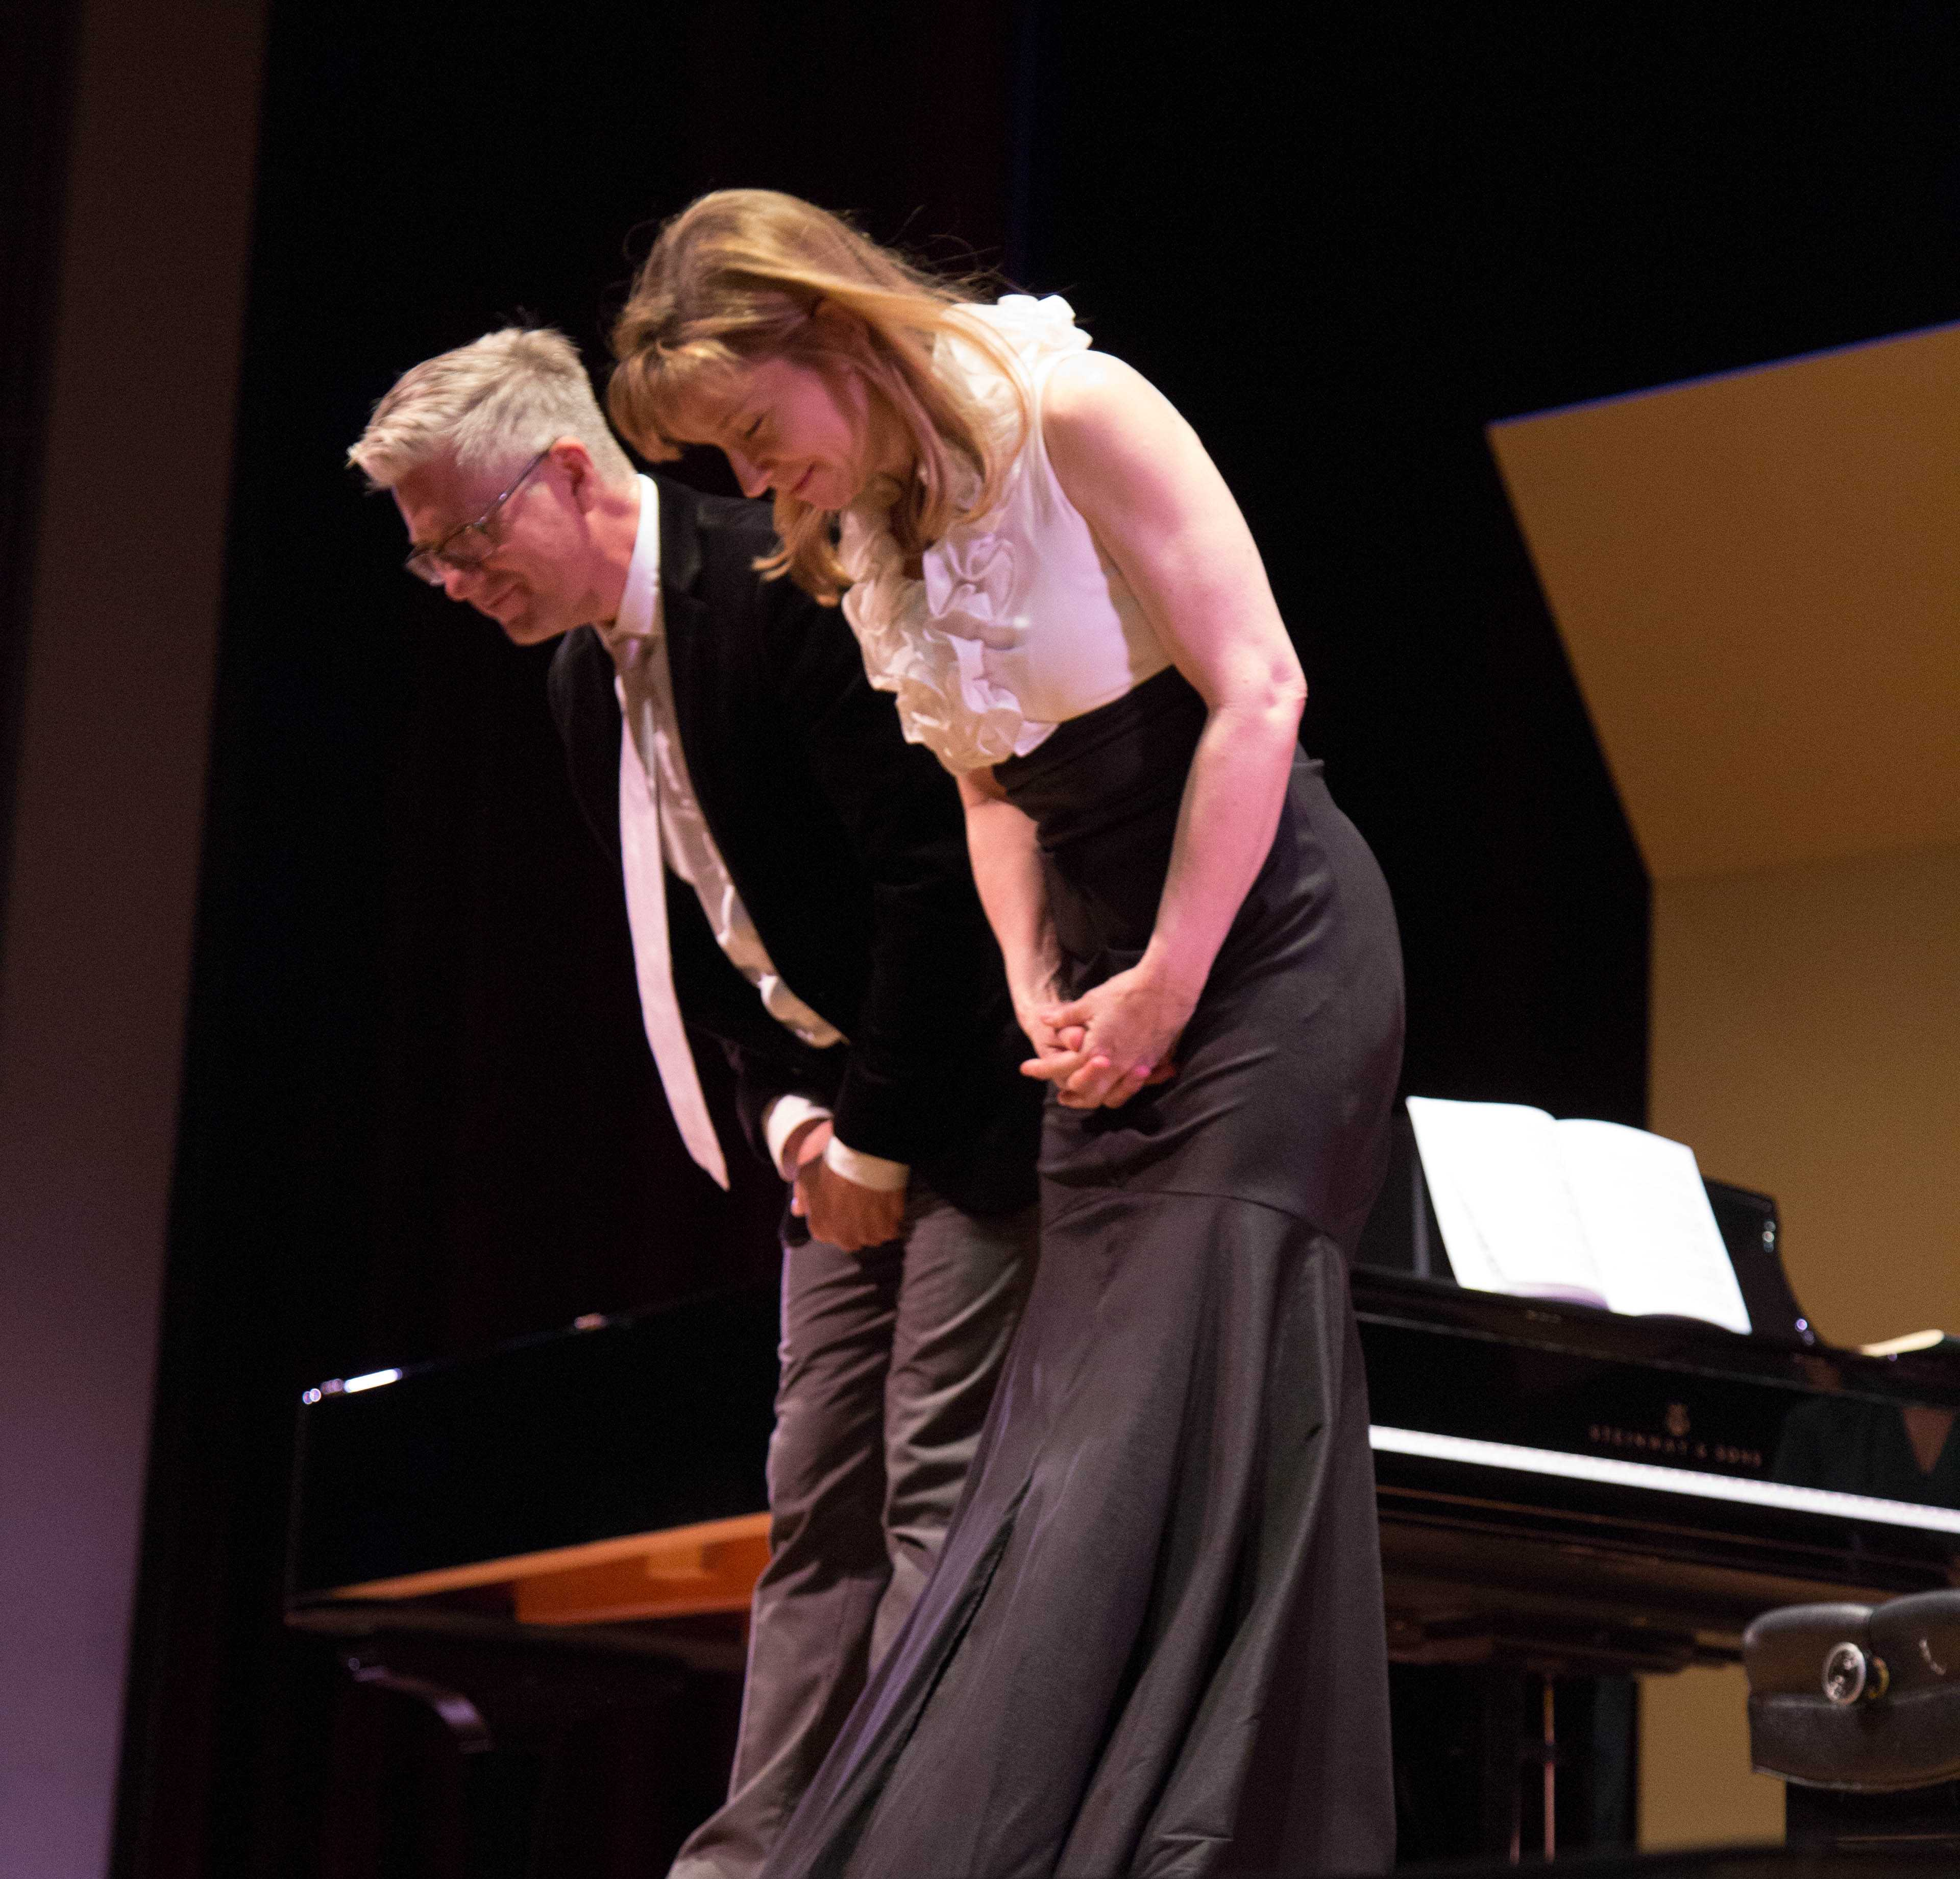 Pianists Christopher Brennan and Polli Chambers-Salazar take a bow after the performance of their last song